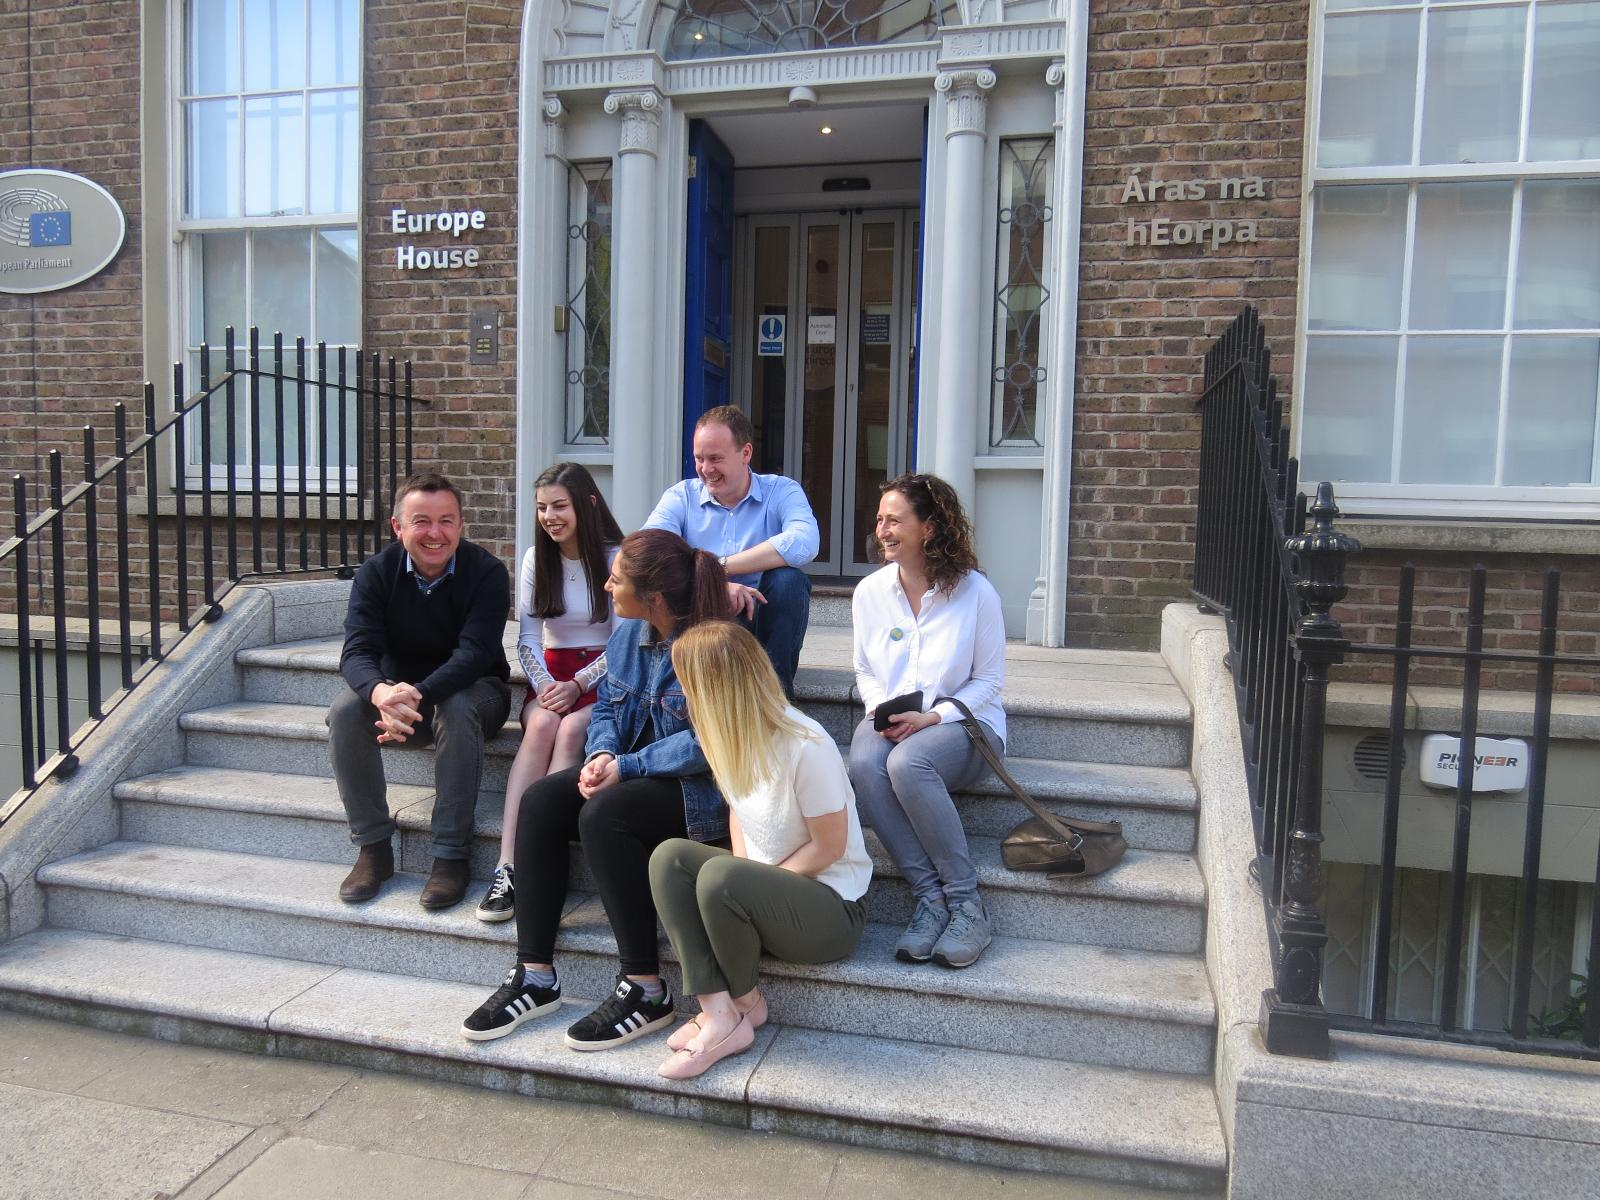 MEPs Lynn Boylan and Brian Hayes with young people outside Europe House - 5 May 2018